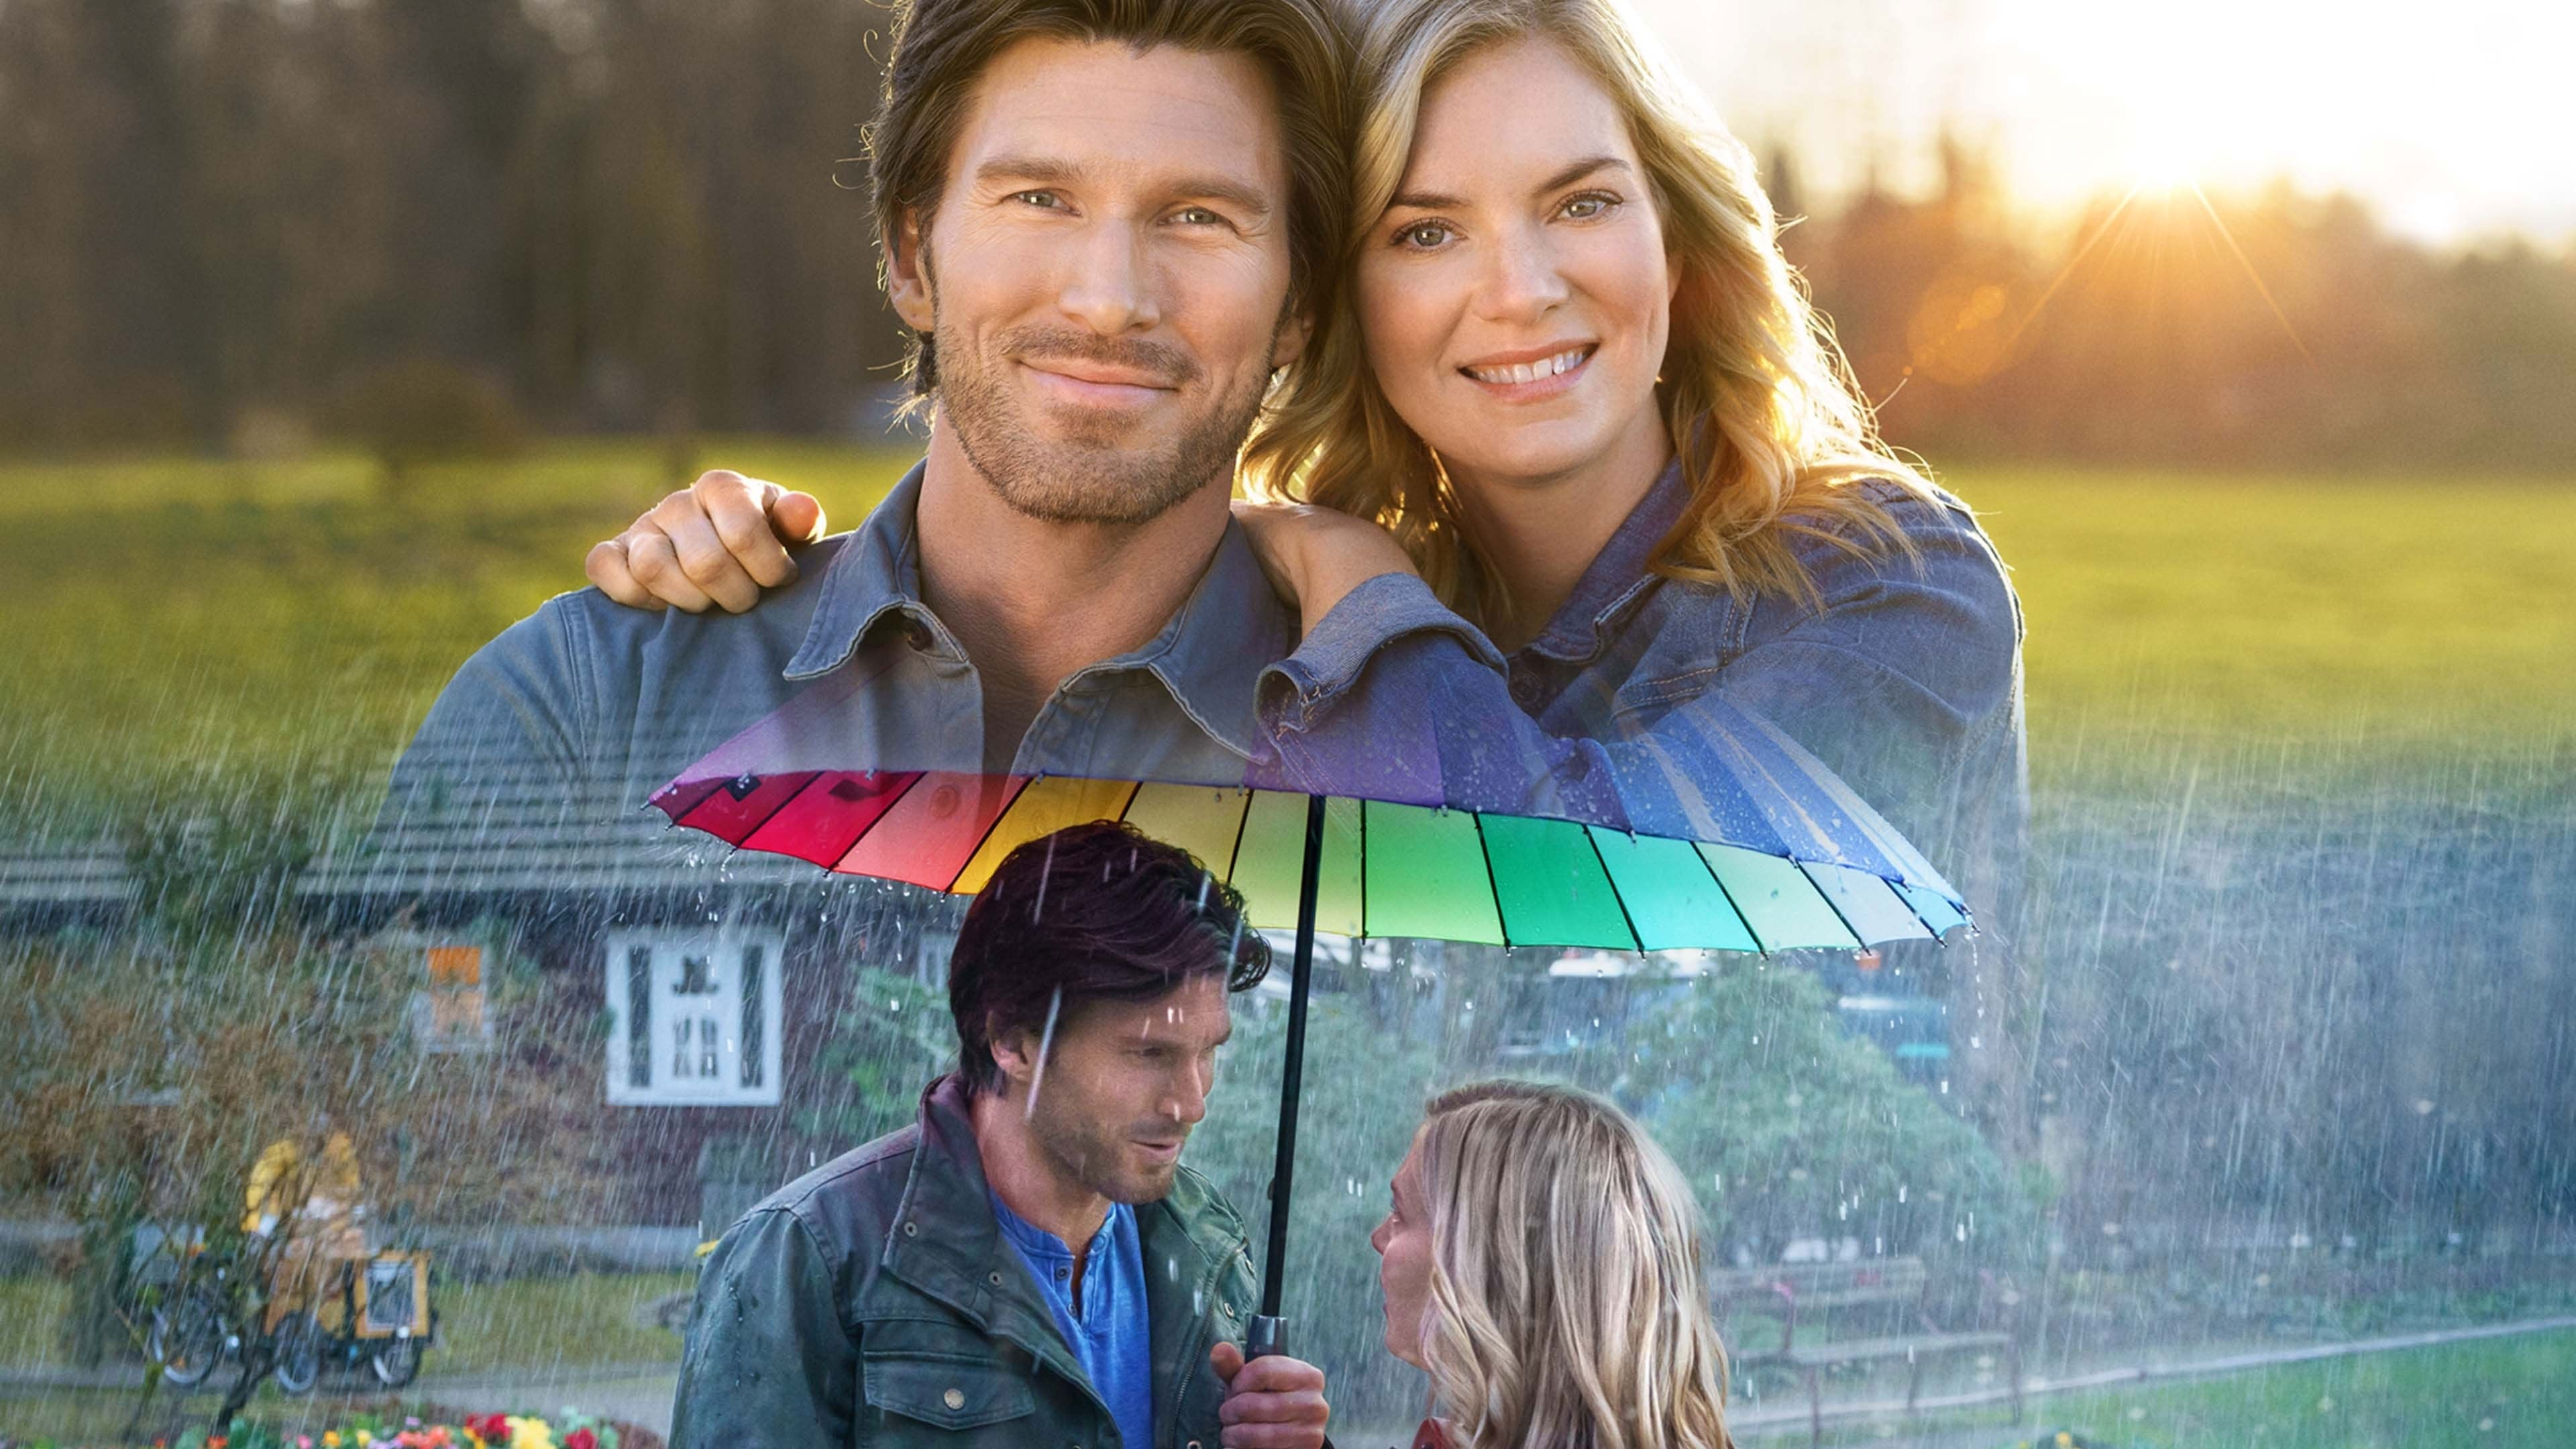 Love in the Forecast (2020)